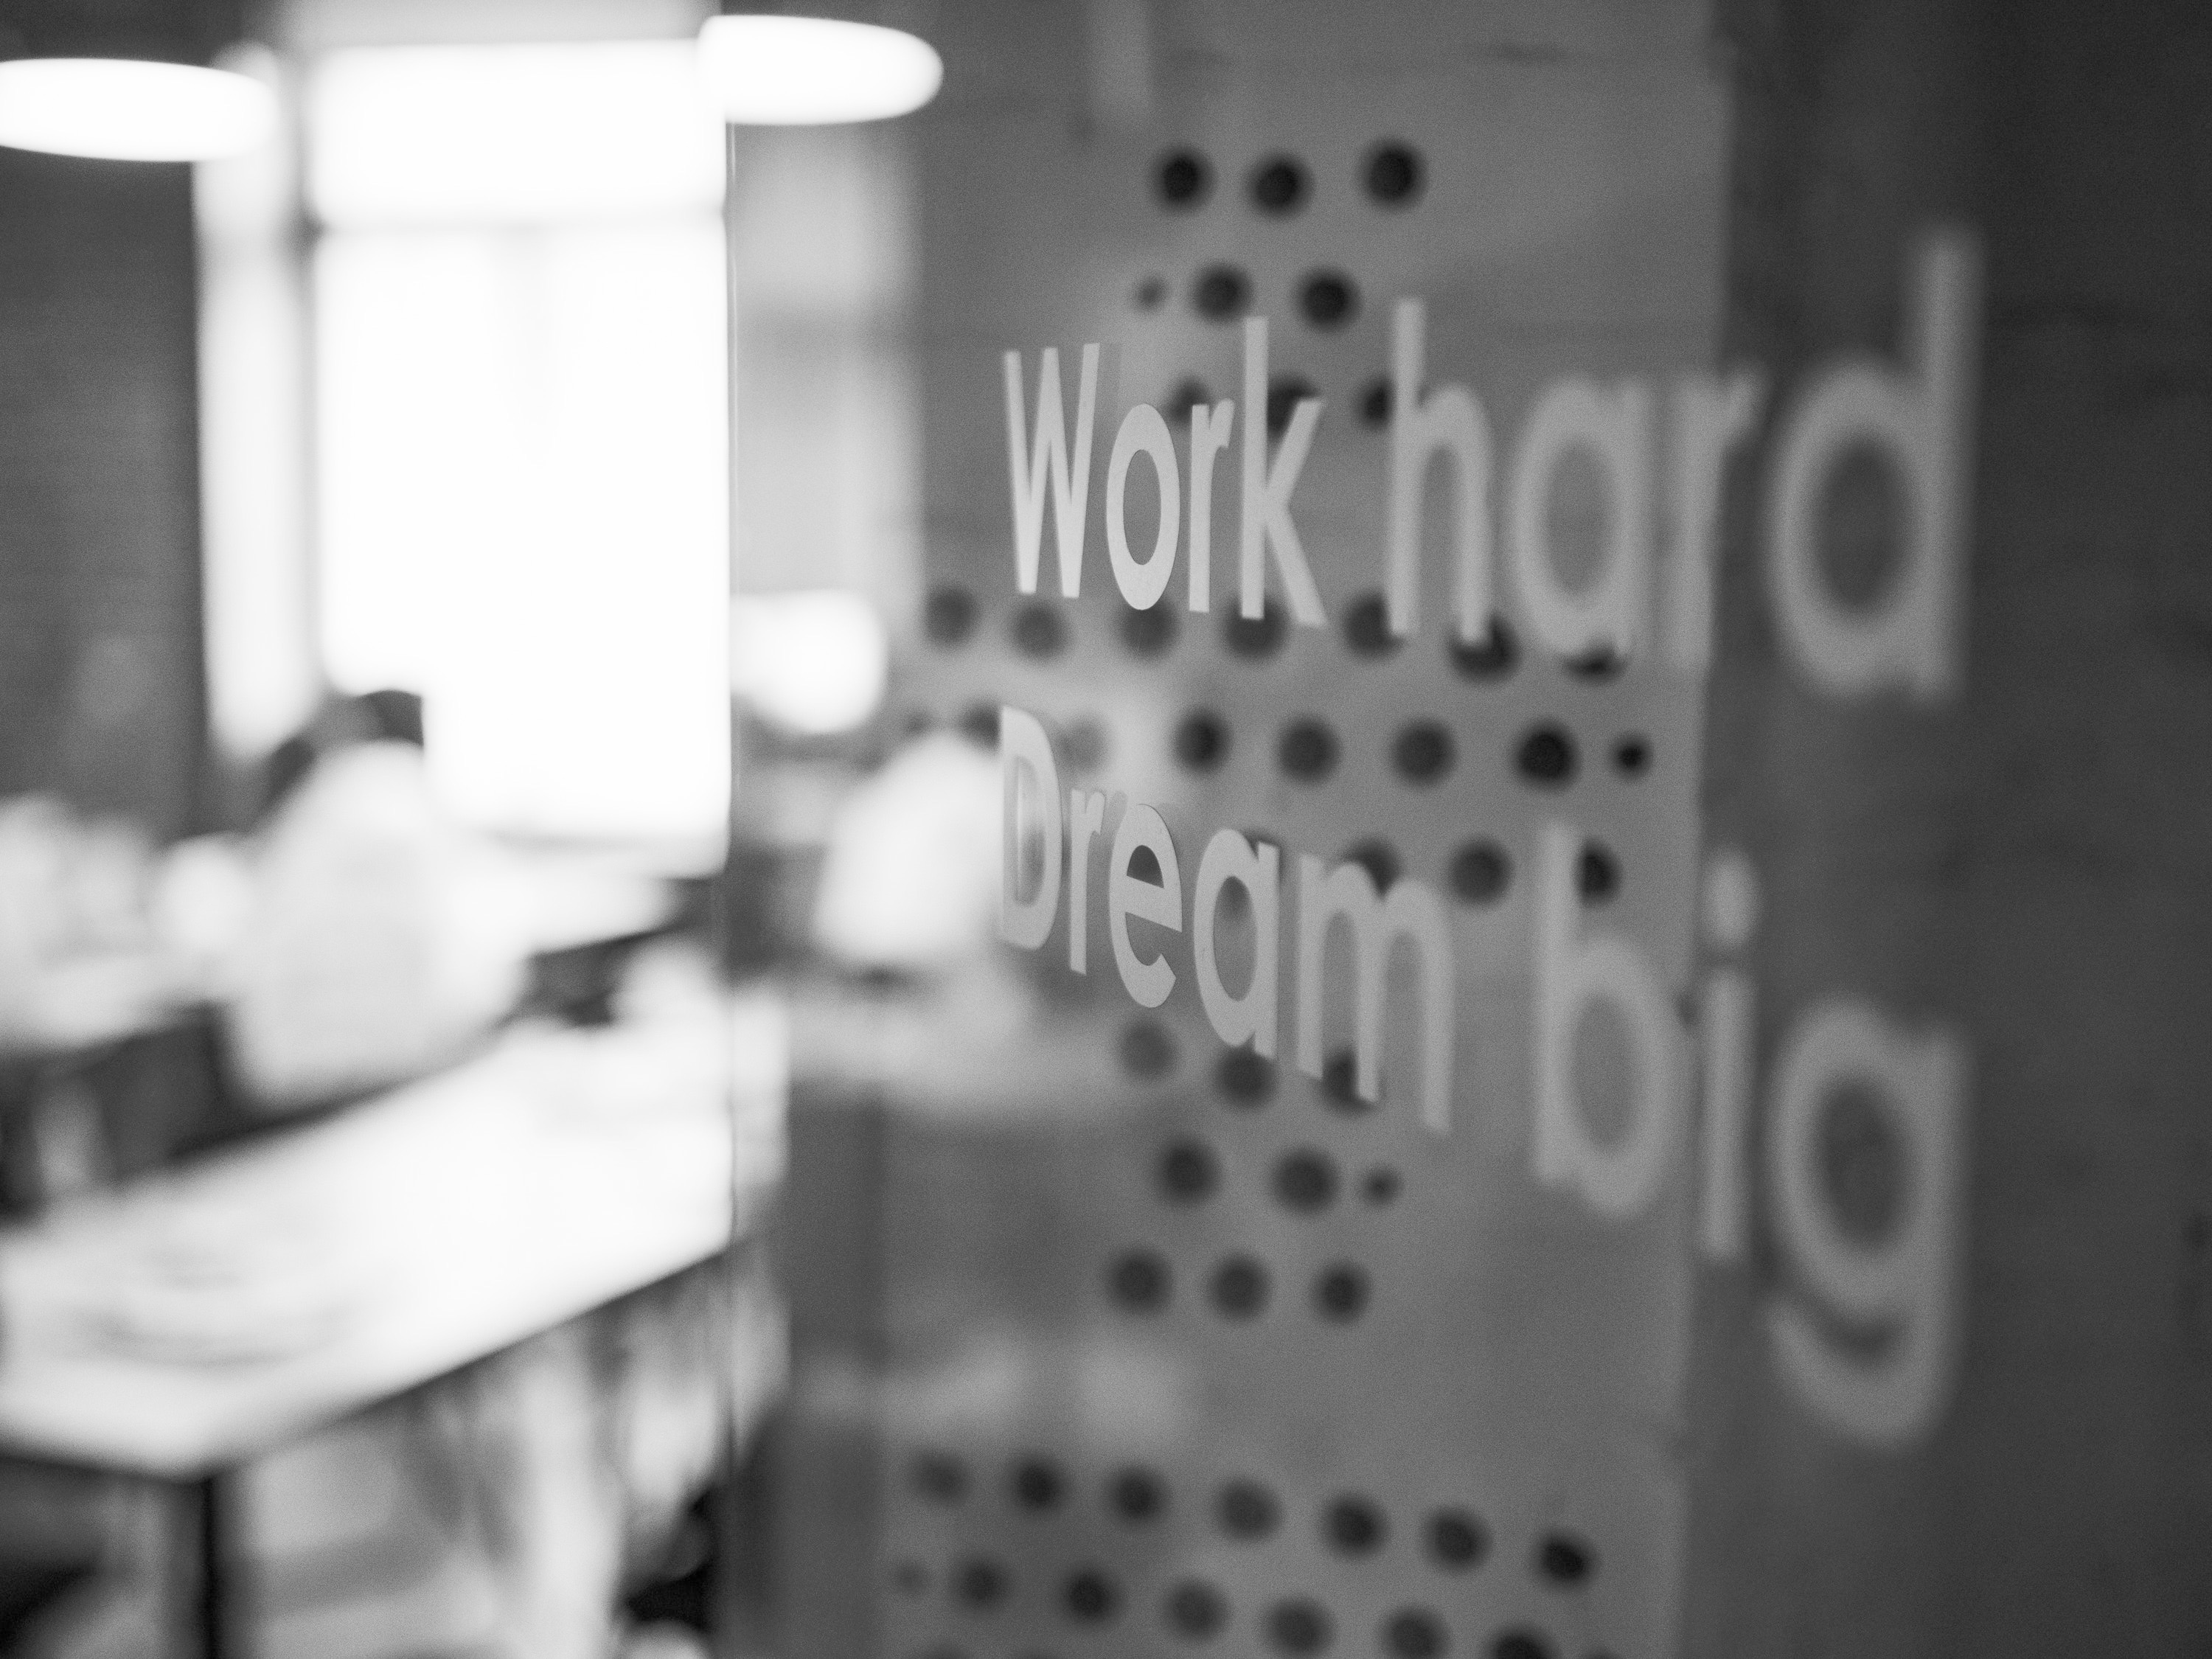 selective-focus-photography-of-work-hard